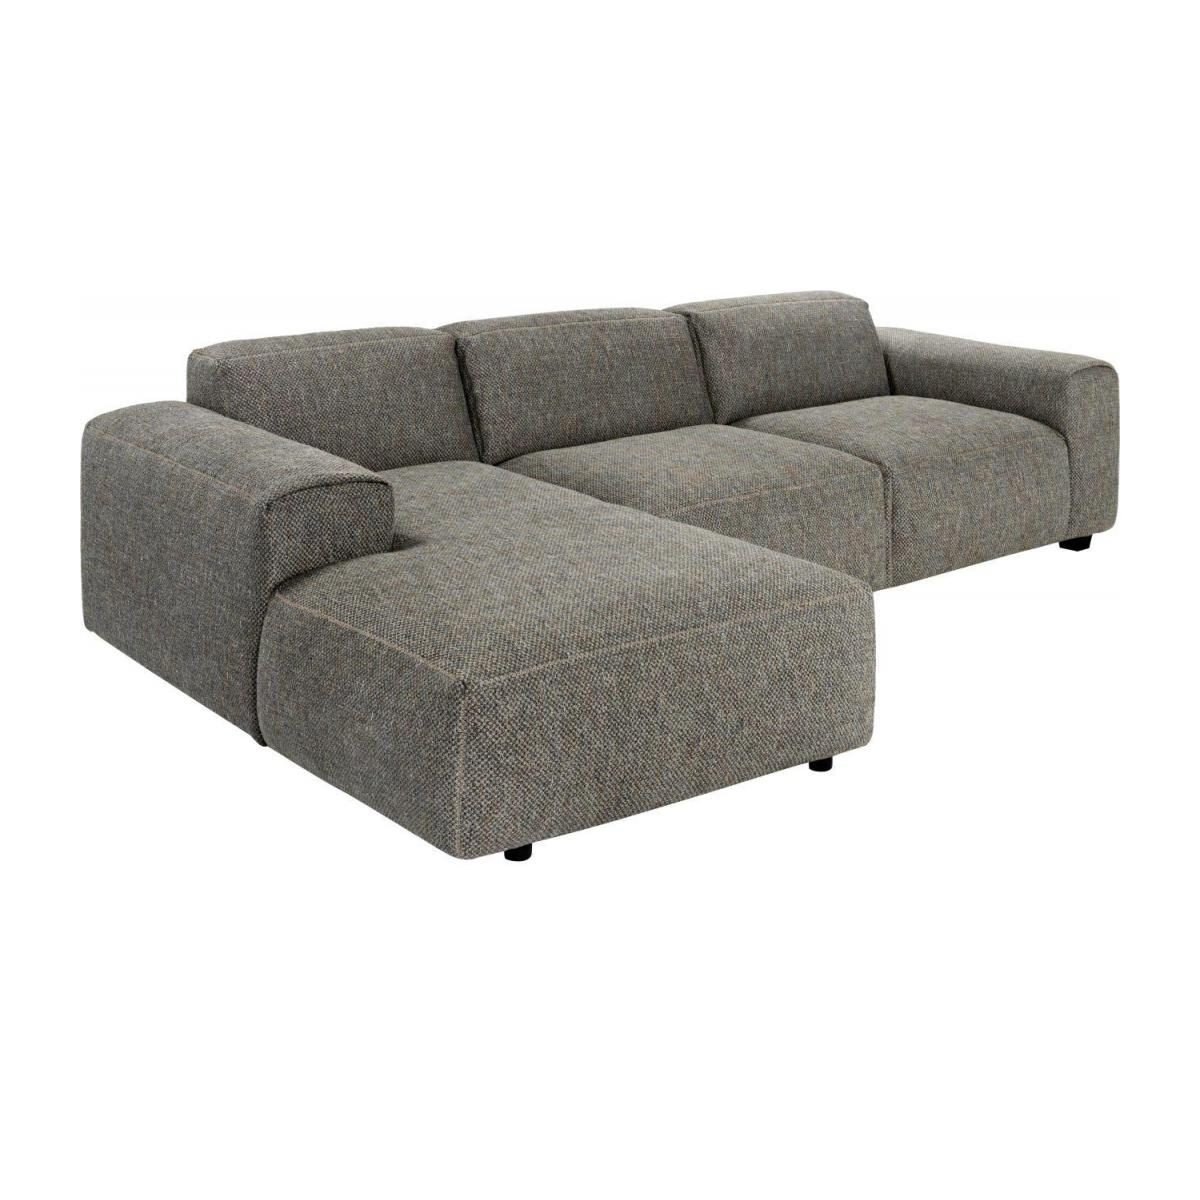 3-Sitzer Sofa mit Chaiselongue links aus Stoff Bellagio night black n°5